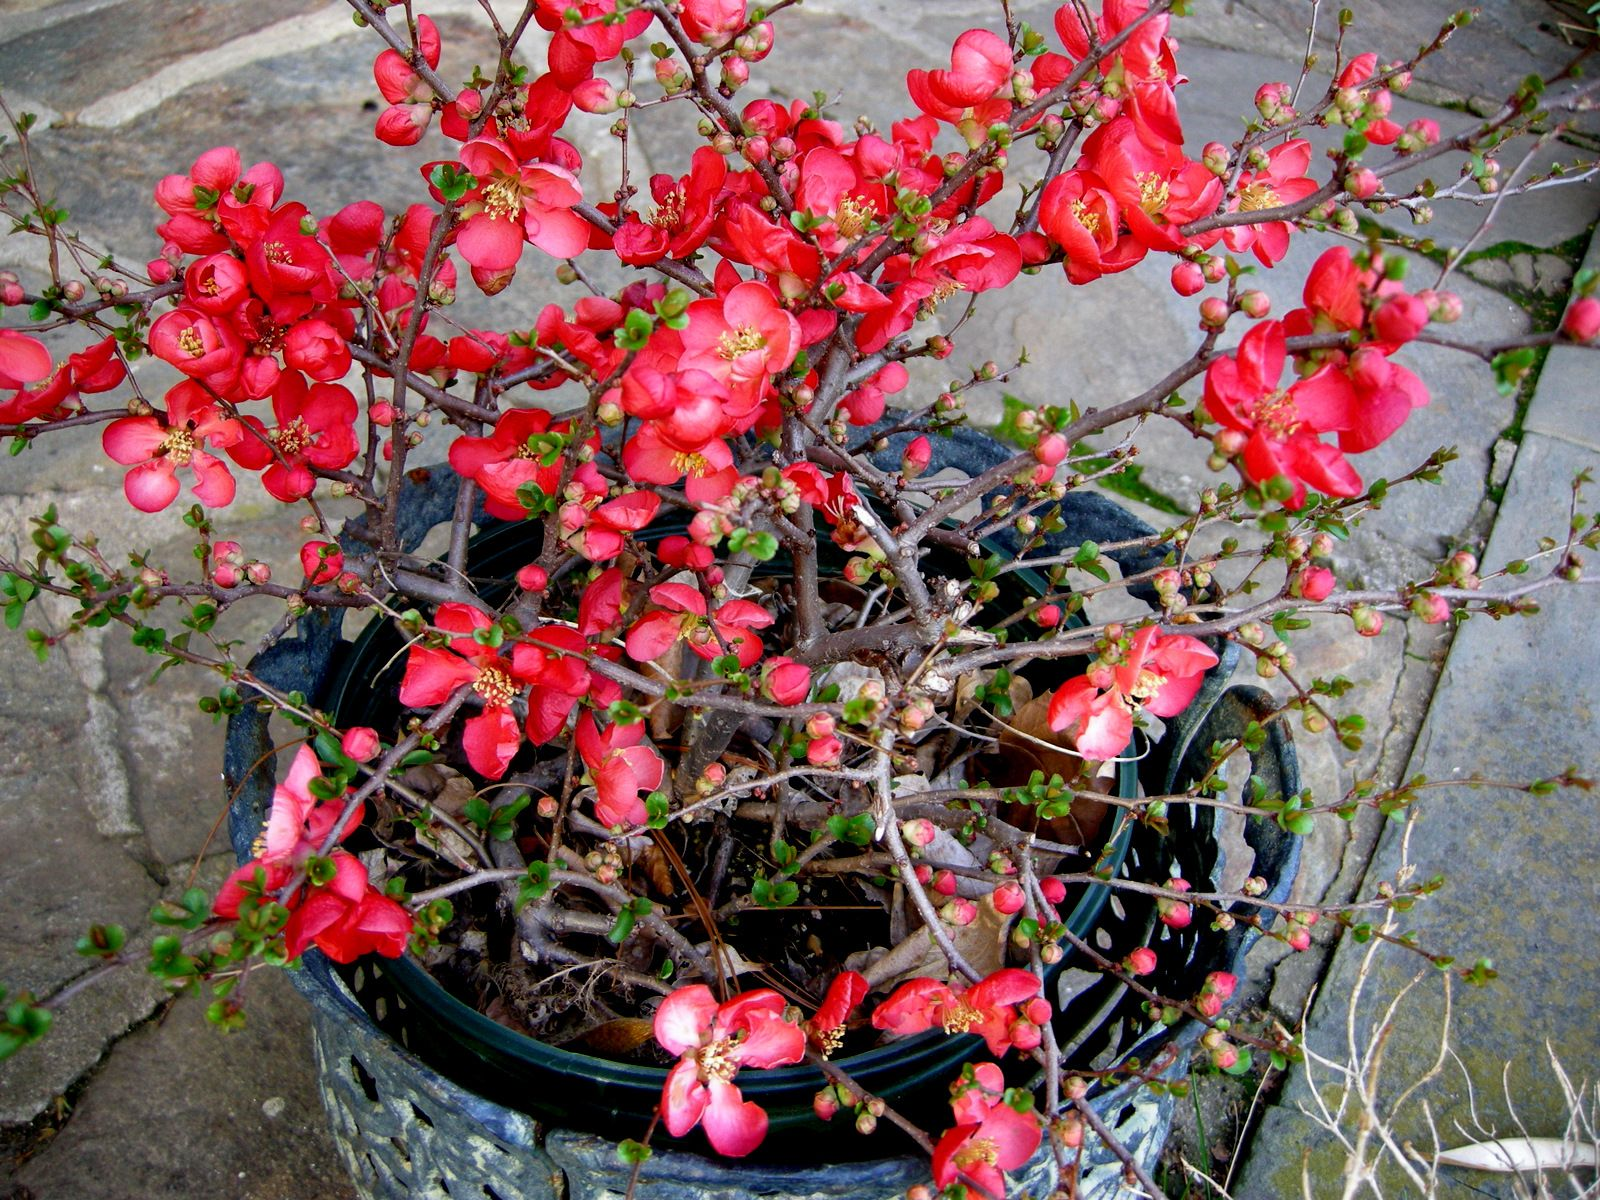 (1 Gallon) Texas Scarlet Flowering Quince - Chaenomeles japonica 'Texas Scarlet a beautiful spreading shrub with georgeous fiery red, apple-blossom-like flowers.